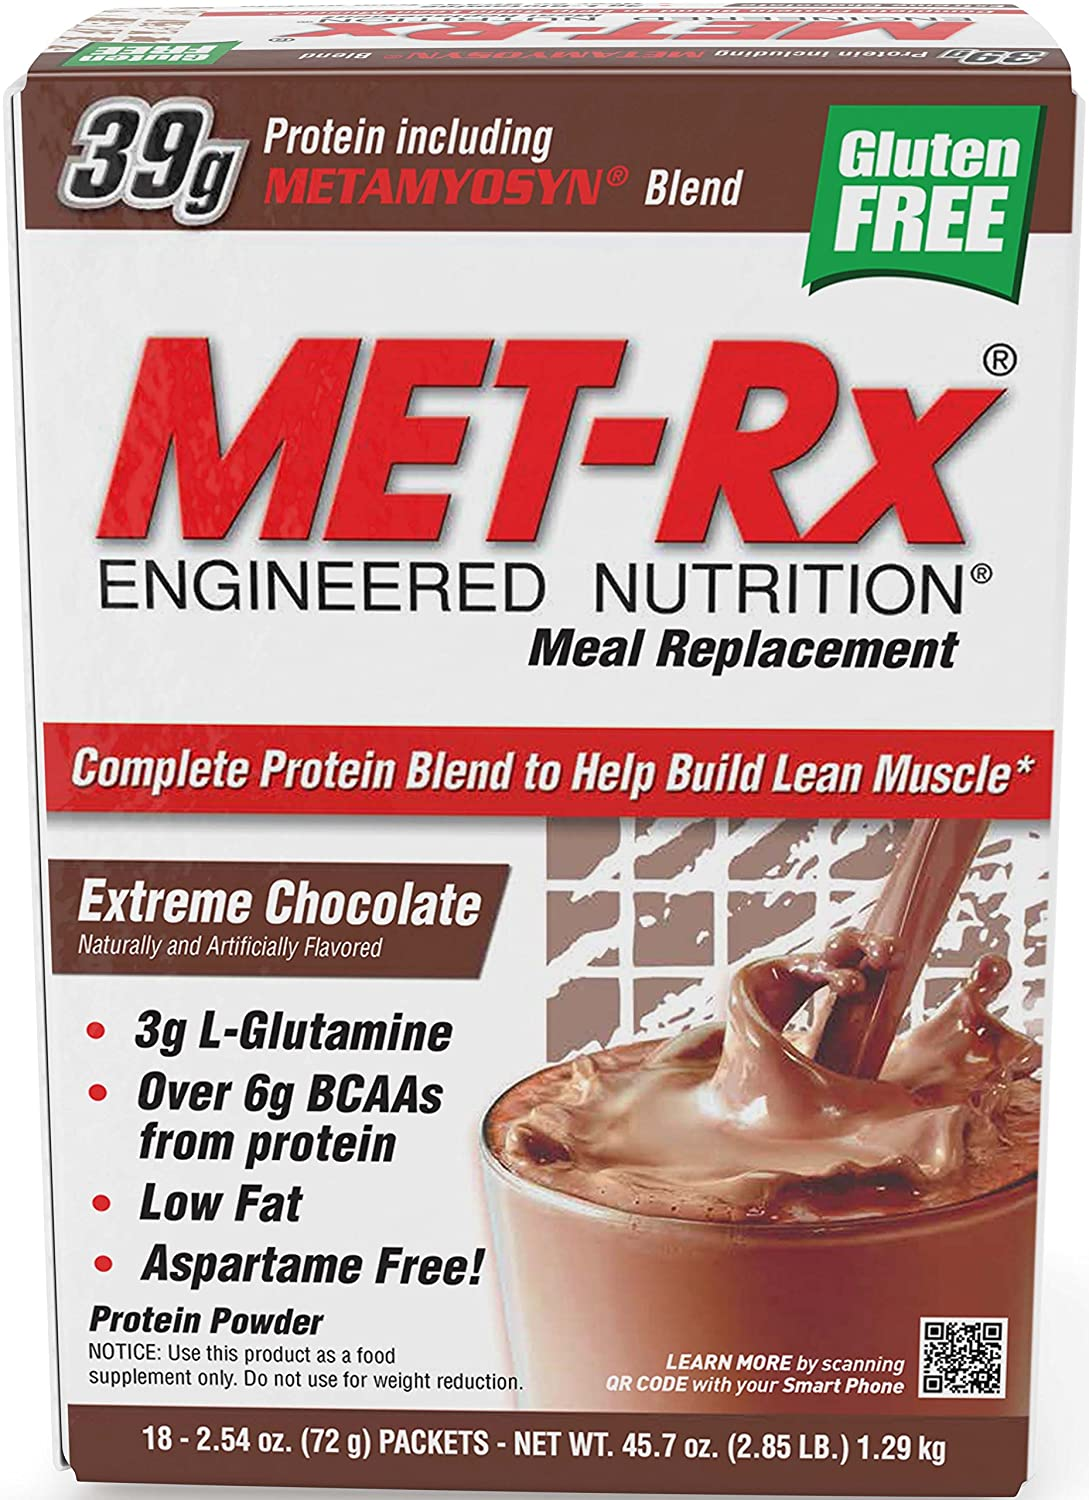 MET-Rx Original Whey Protein Powder, Great for Meal Replacement Shakes, Low Carb, Gluten Free, Extreme Chocolate, 2.54 oz. Packets, 18 Count